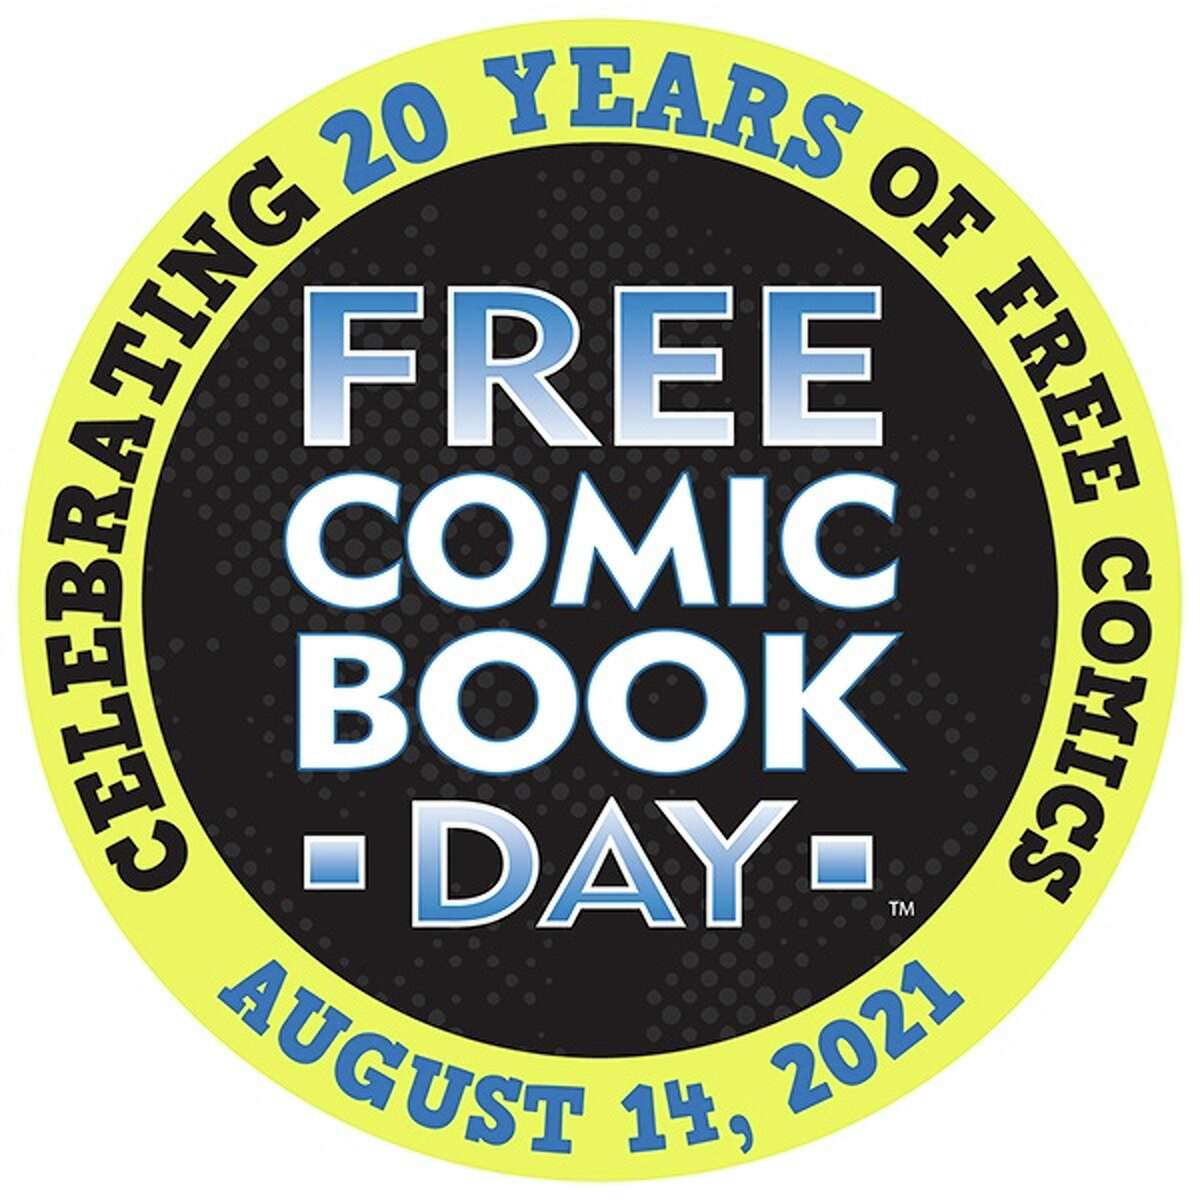 Free Comic Book Day will take place on Saturday, Aug. 14 this year. The nationally recognized day is traditionally held on May 4, it was changed due to the pandemic.